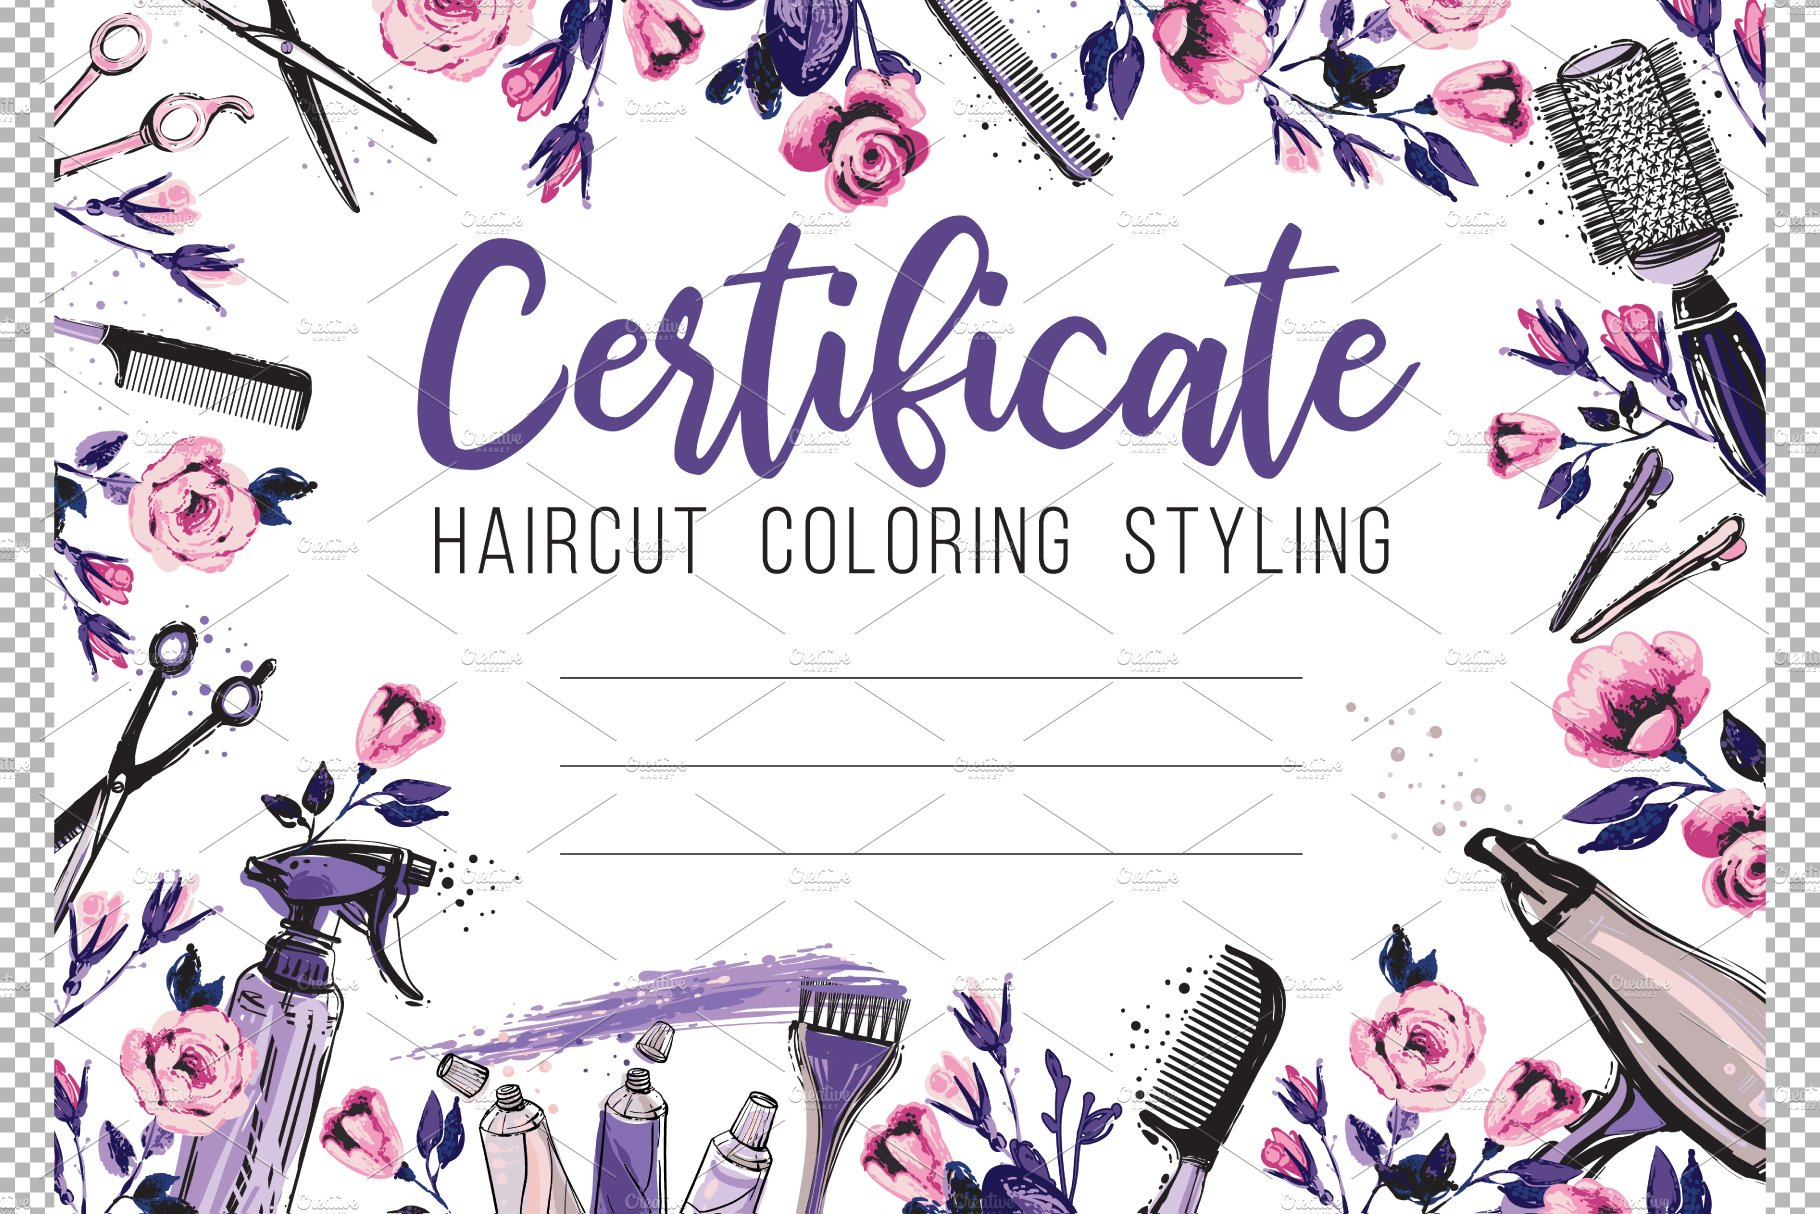 Salon Gift Certificate Template from images.creativemarket.com